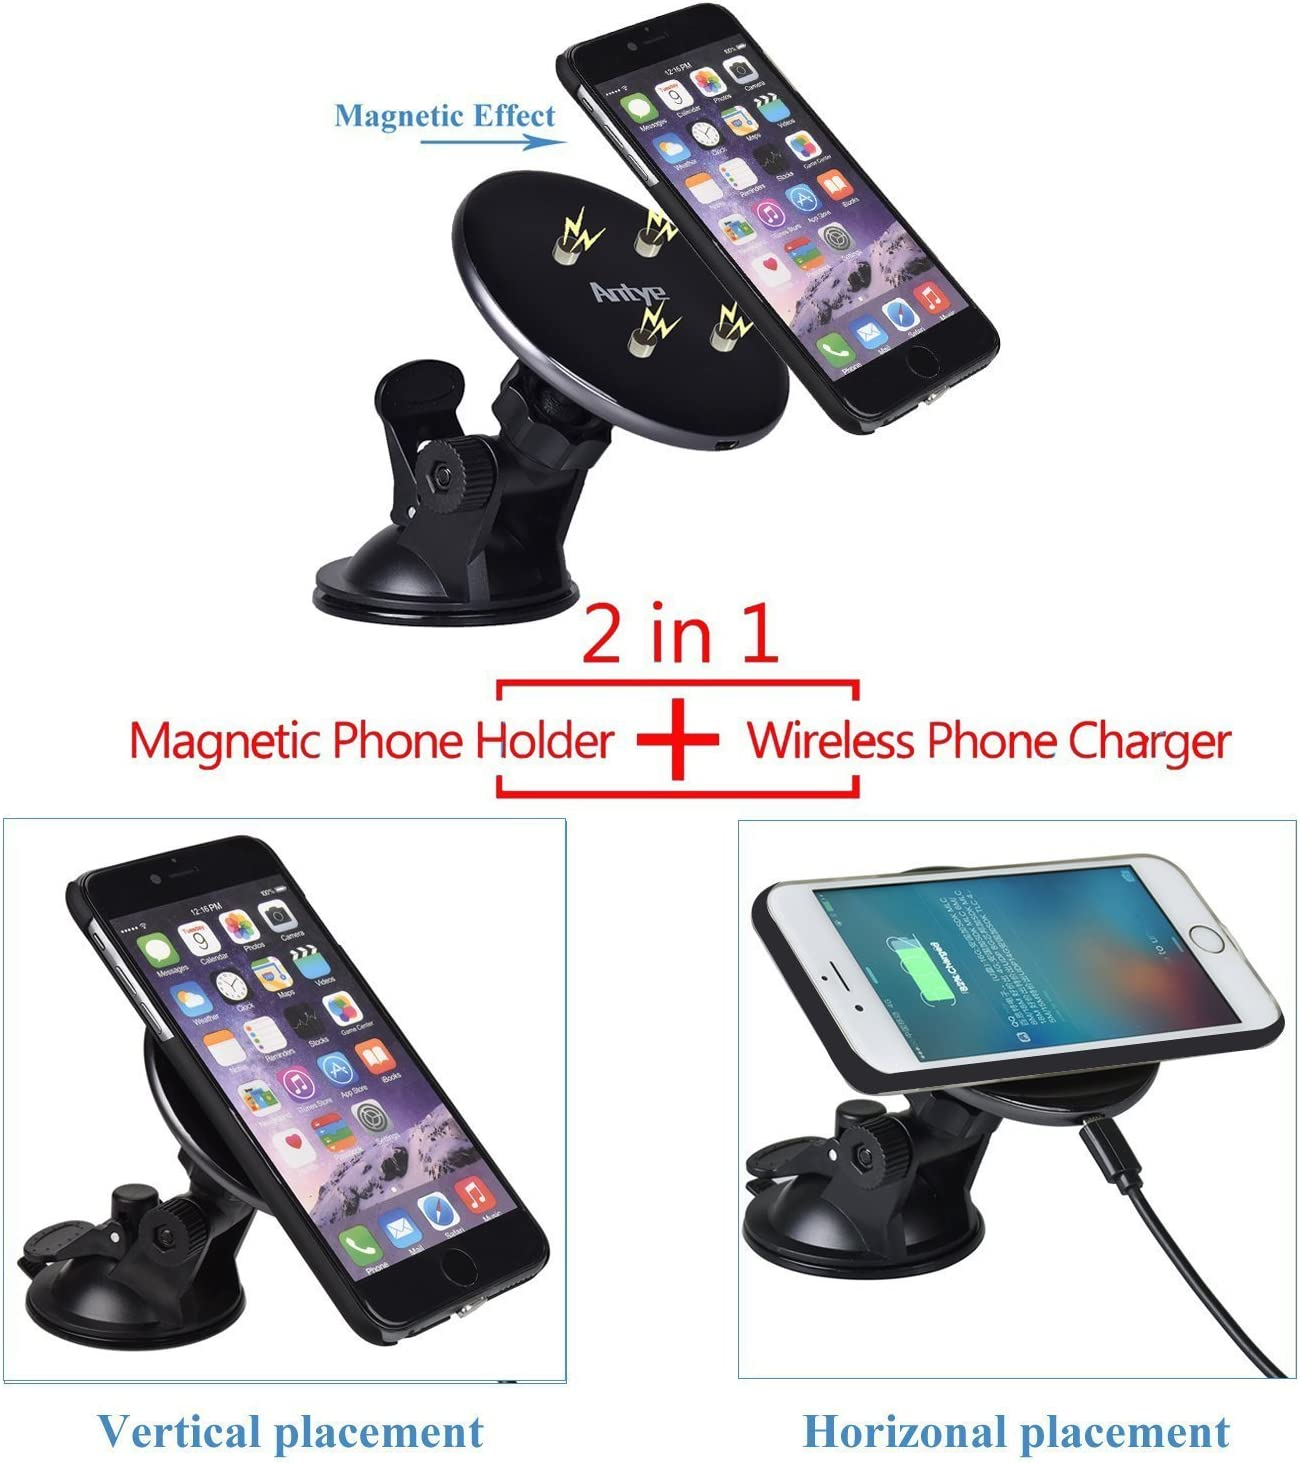 Qi Wireless Charging Dock Cradle and Wireless Charging Receiver Case for iPhone 7 Plus 2-in-1 Antye Magnetic Wireless Car Charger /& Air Vent Mount Holder for iPhone 7 Plus, Black